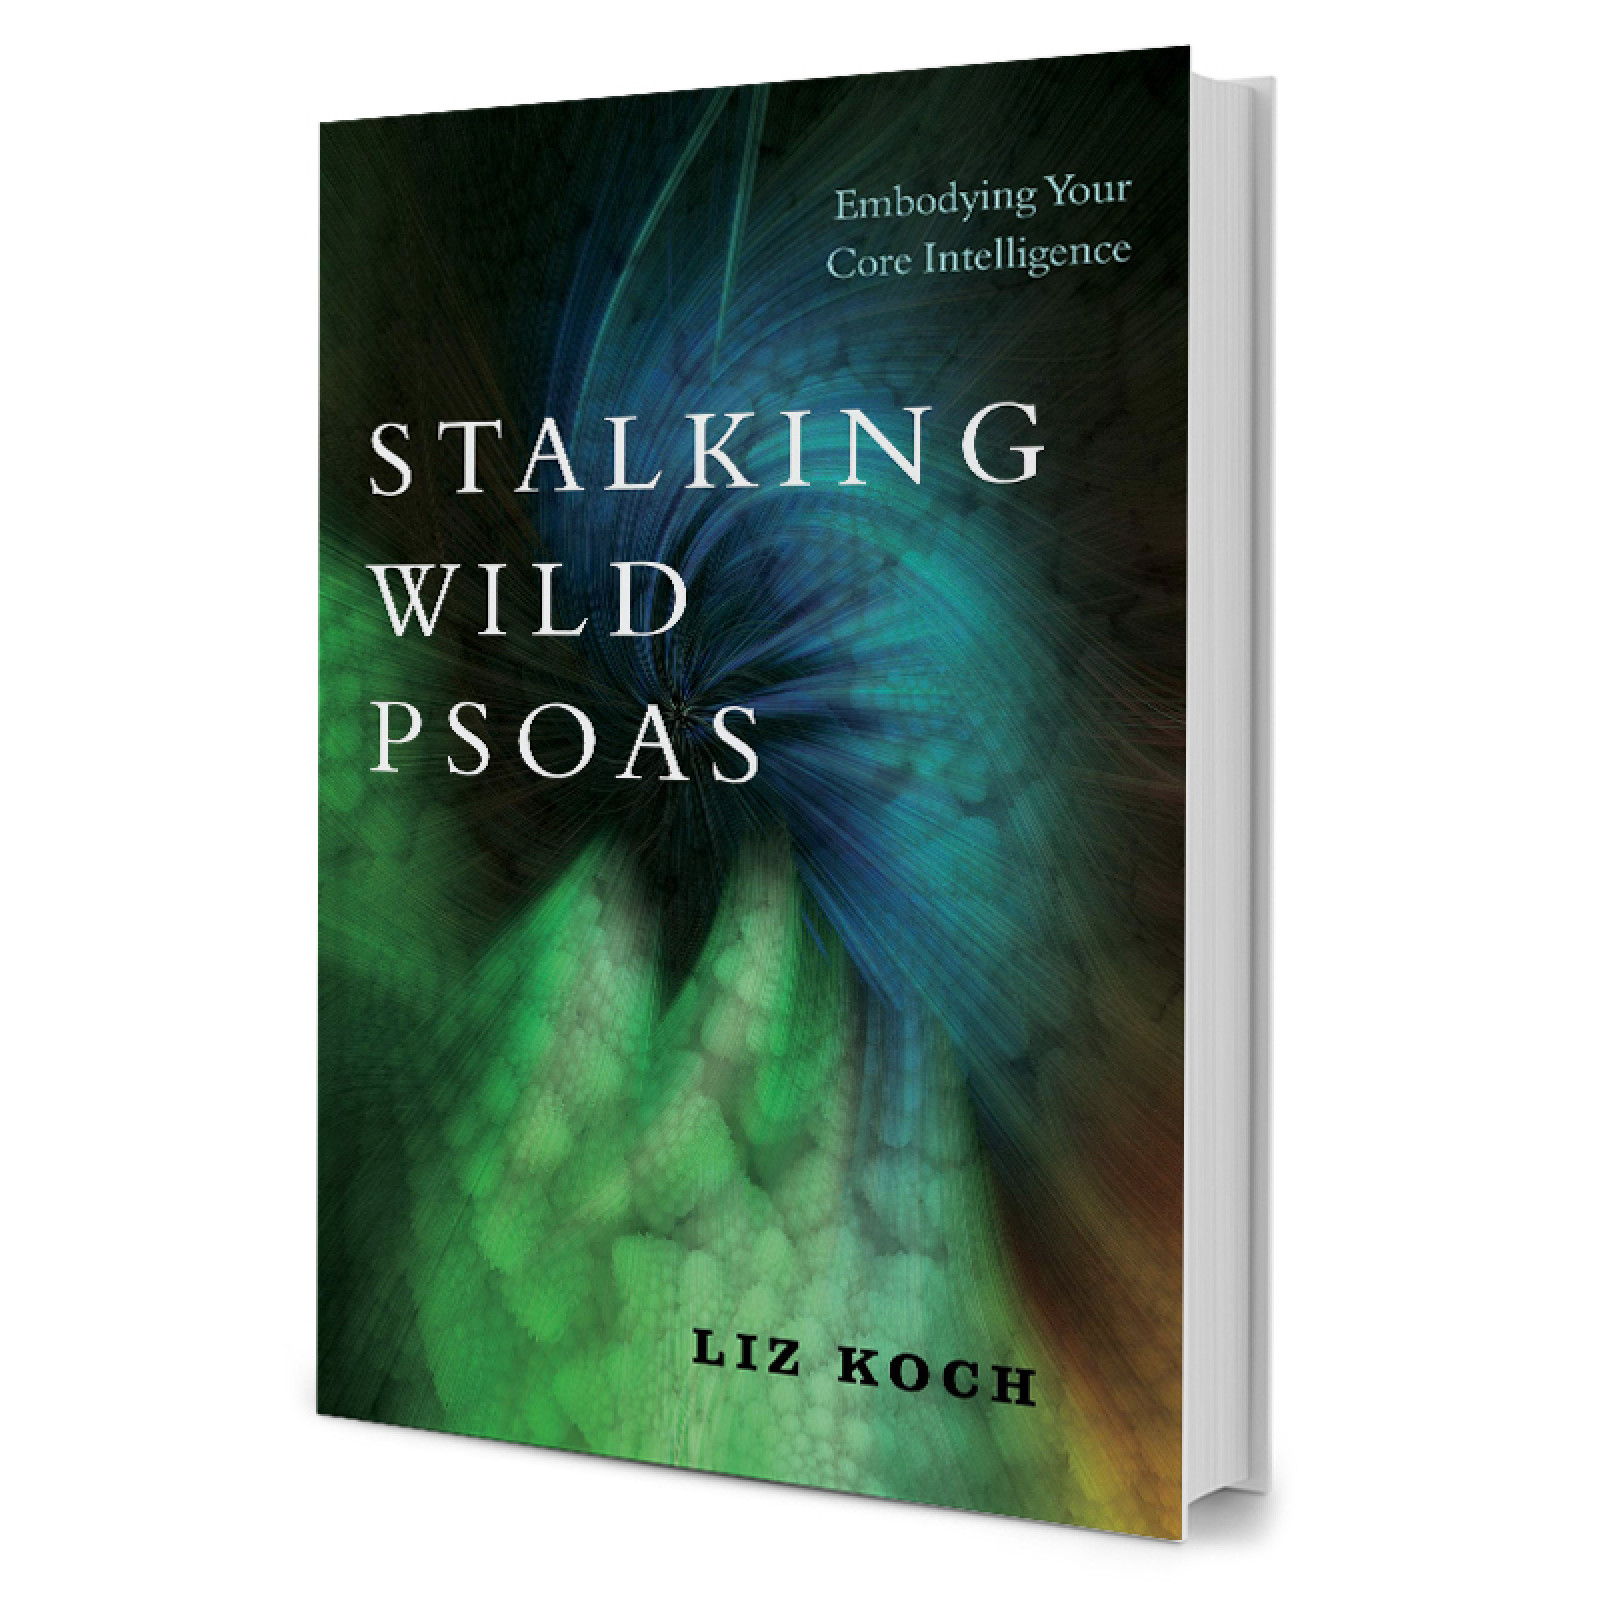 Stalking Wild Psoas - Embodying Your Core Intelligence